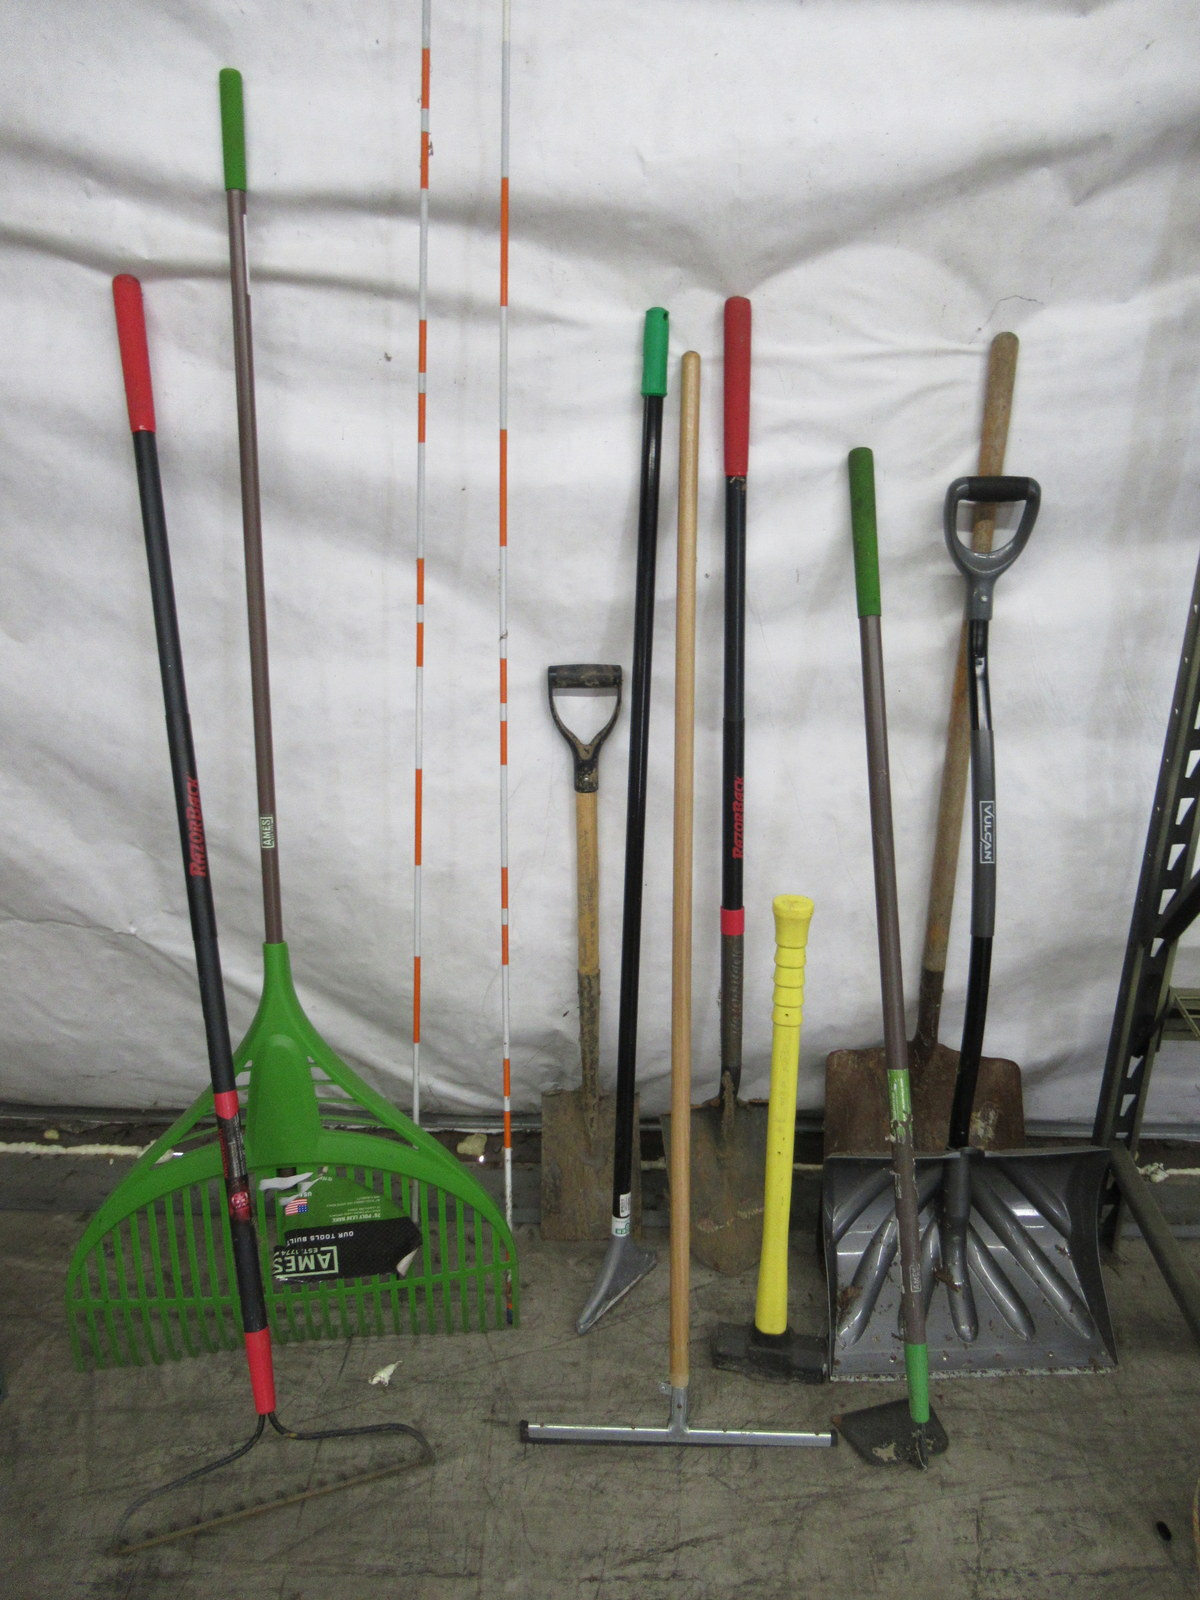 Lot 250 - Wheelbarrow, Rakes, Shovels, Sledge Hammer, Squeegee, Hoe